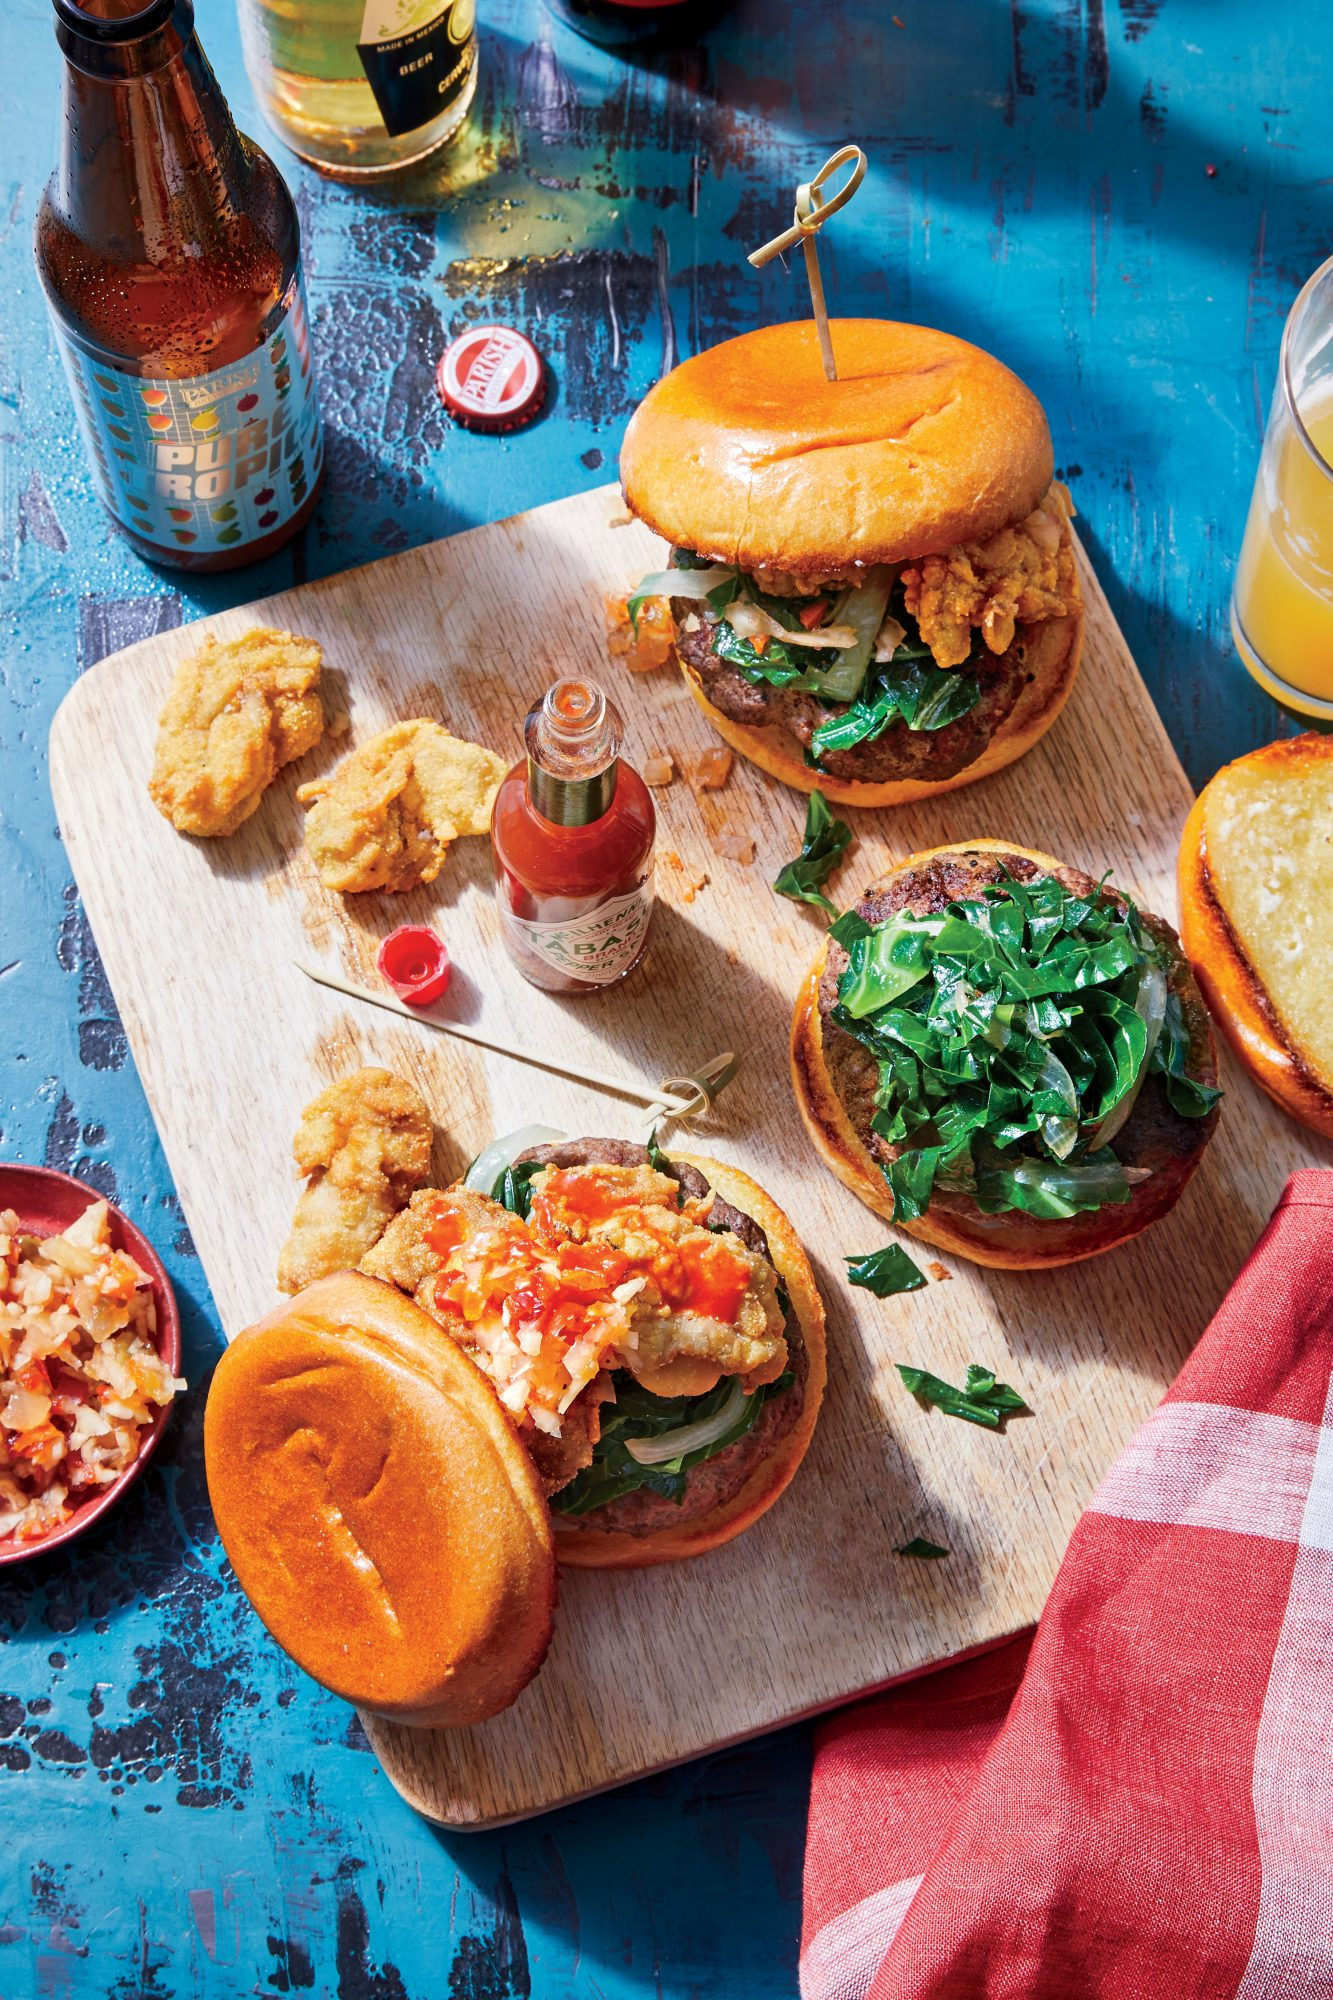 Cajun Burger with Collard Greens and Fried Oysters